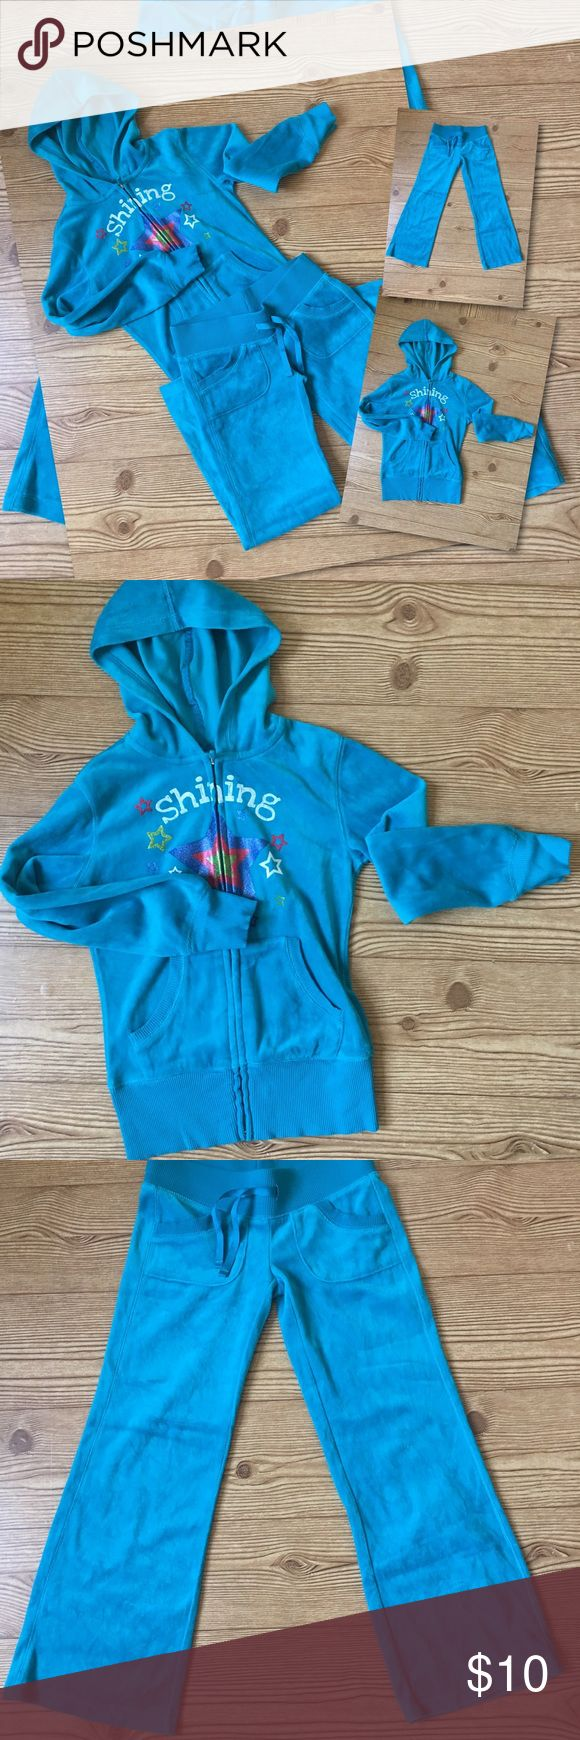 ⭐️GIRLS SHINING STAR JOGGERS SUIT⭐️ 🏃🏽♀️EUC, no signs of wear... for the cool gal🏃🏽♀️ size 7, The lighting is not the good today, the color is more of a turquoise.. Matching Sets